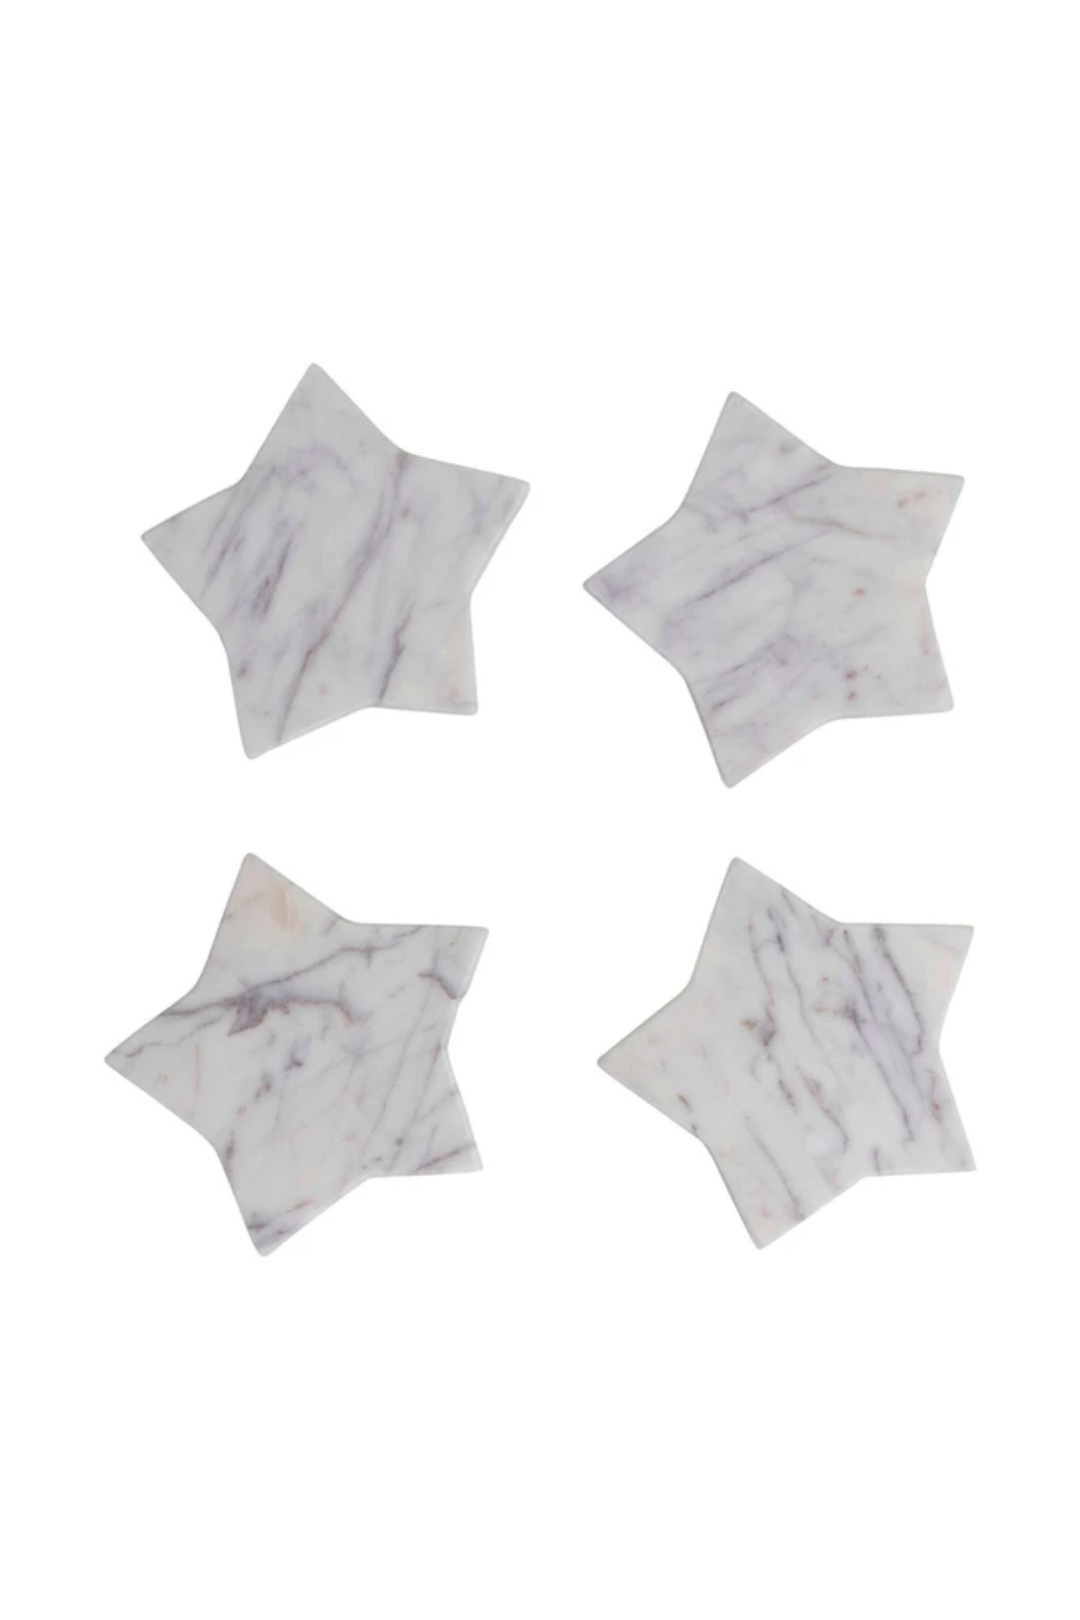 Marble Star Shaped Coasters, Set of 4